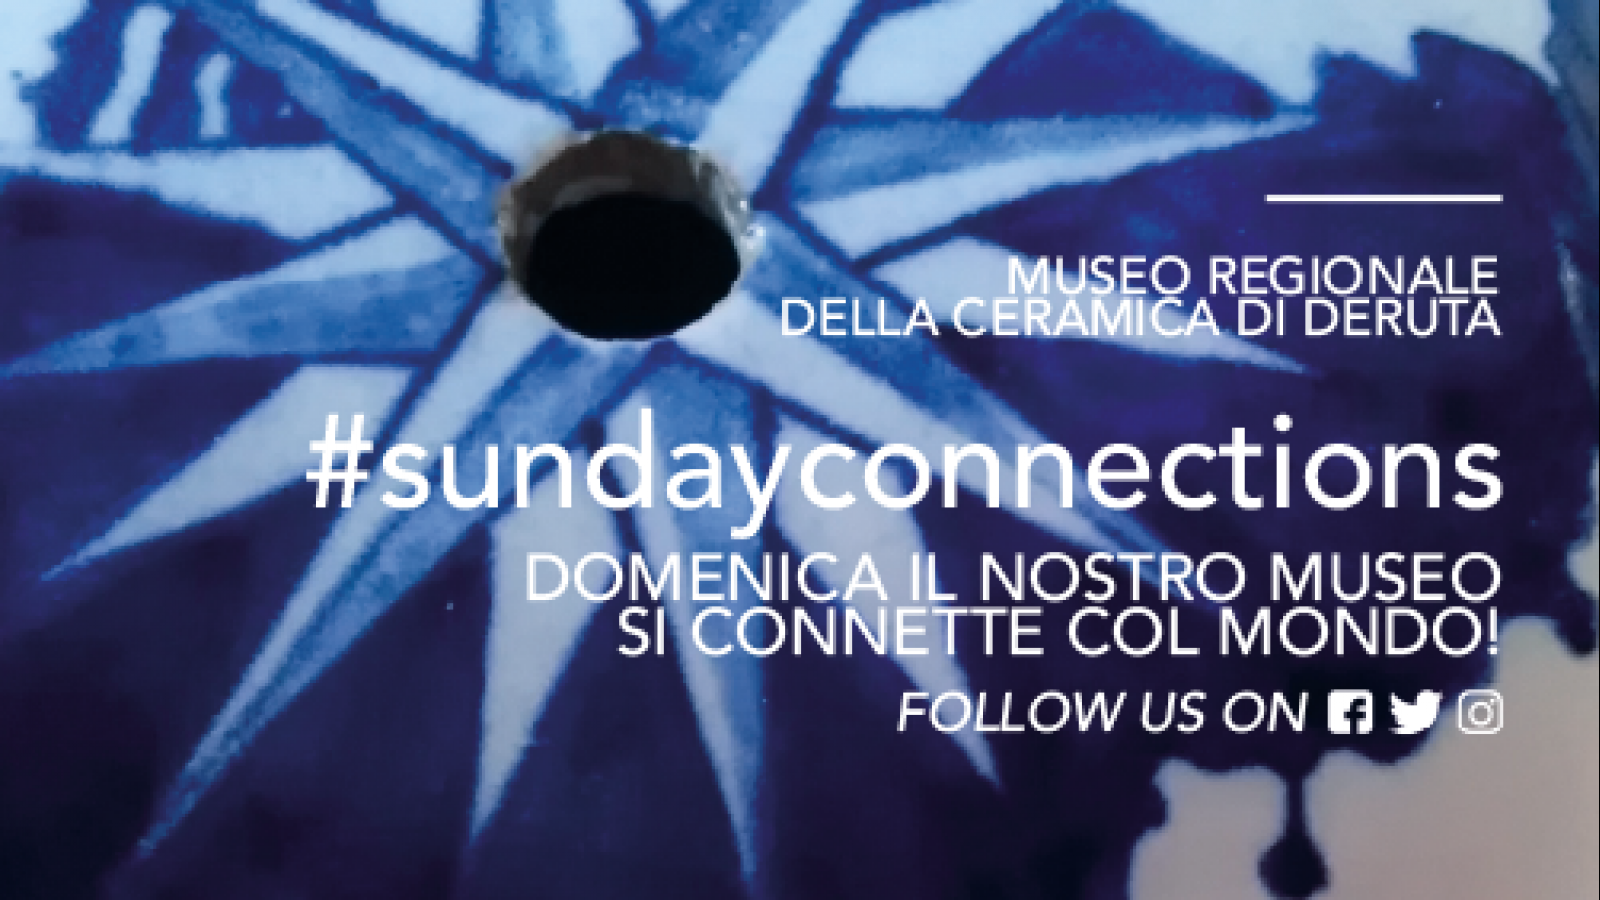 Deruta. Sunday connections. On Sunday our museum will connect with the world!